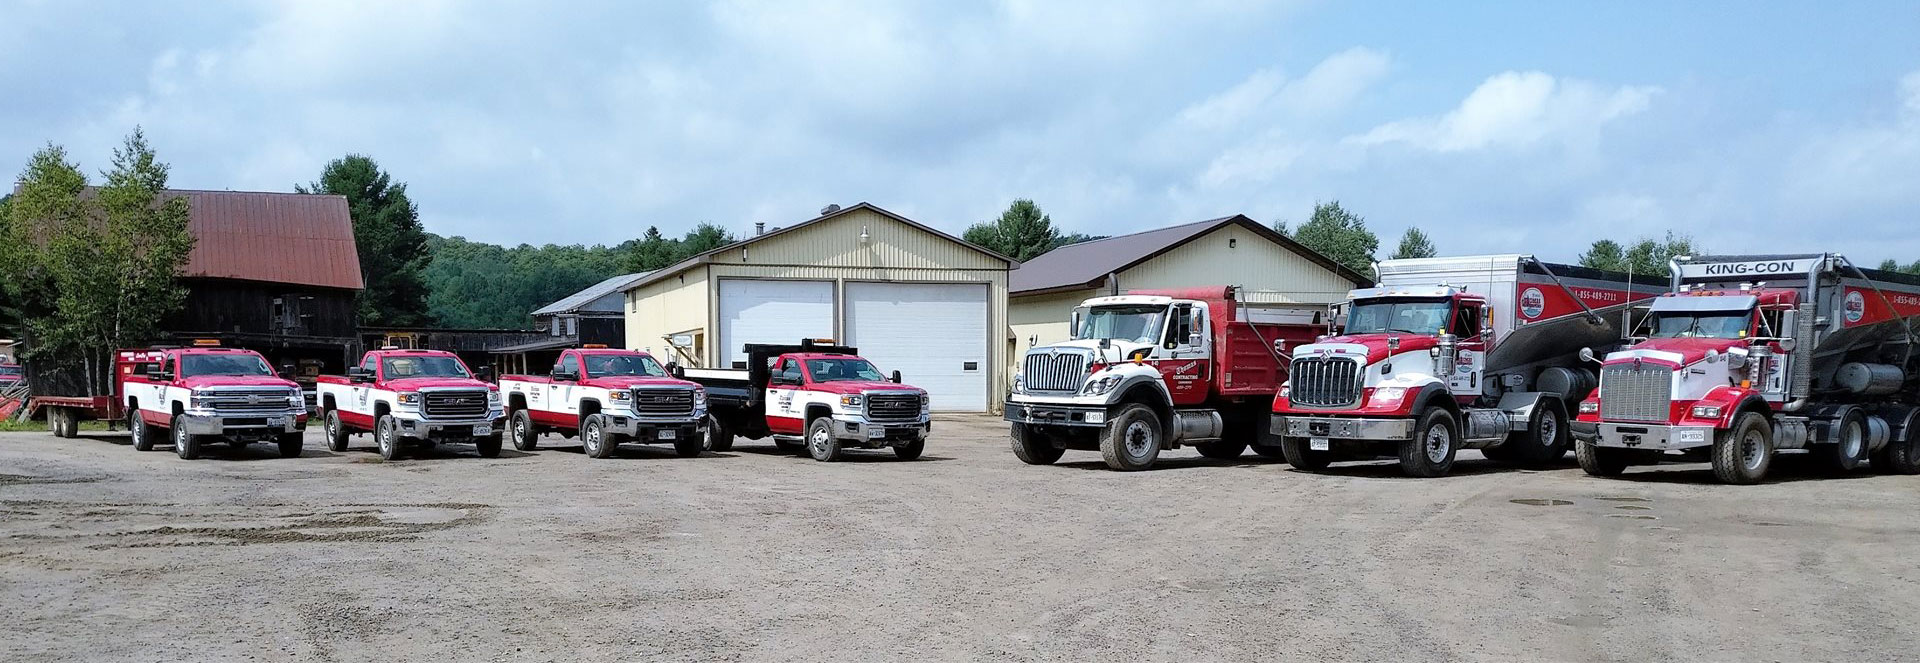 Our trucks & dumps lined up in a row